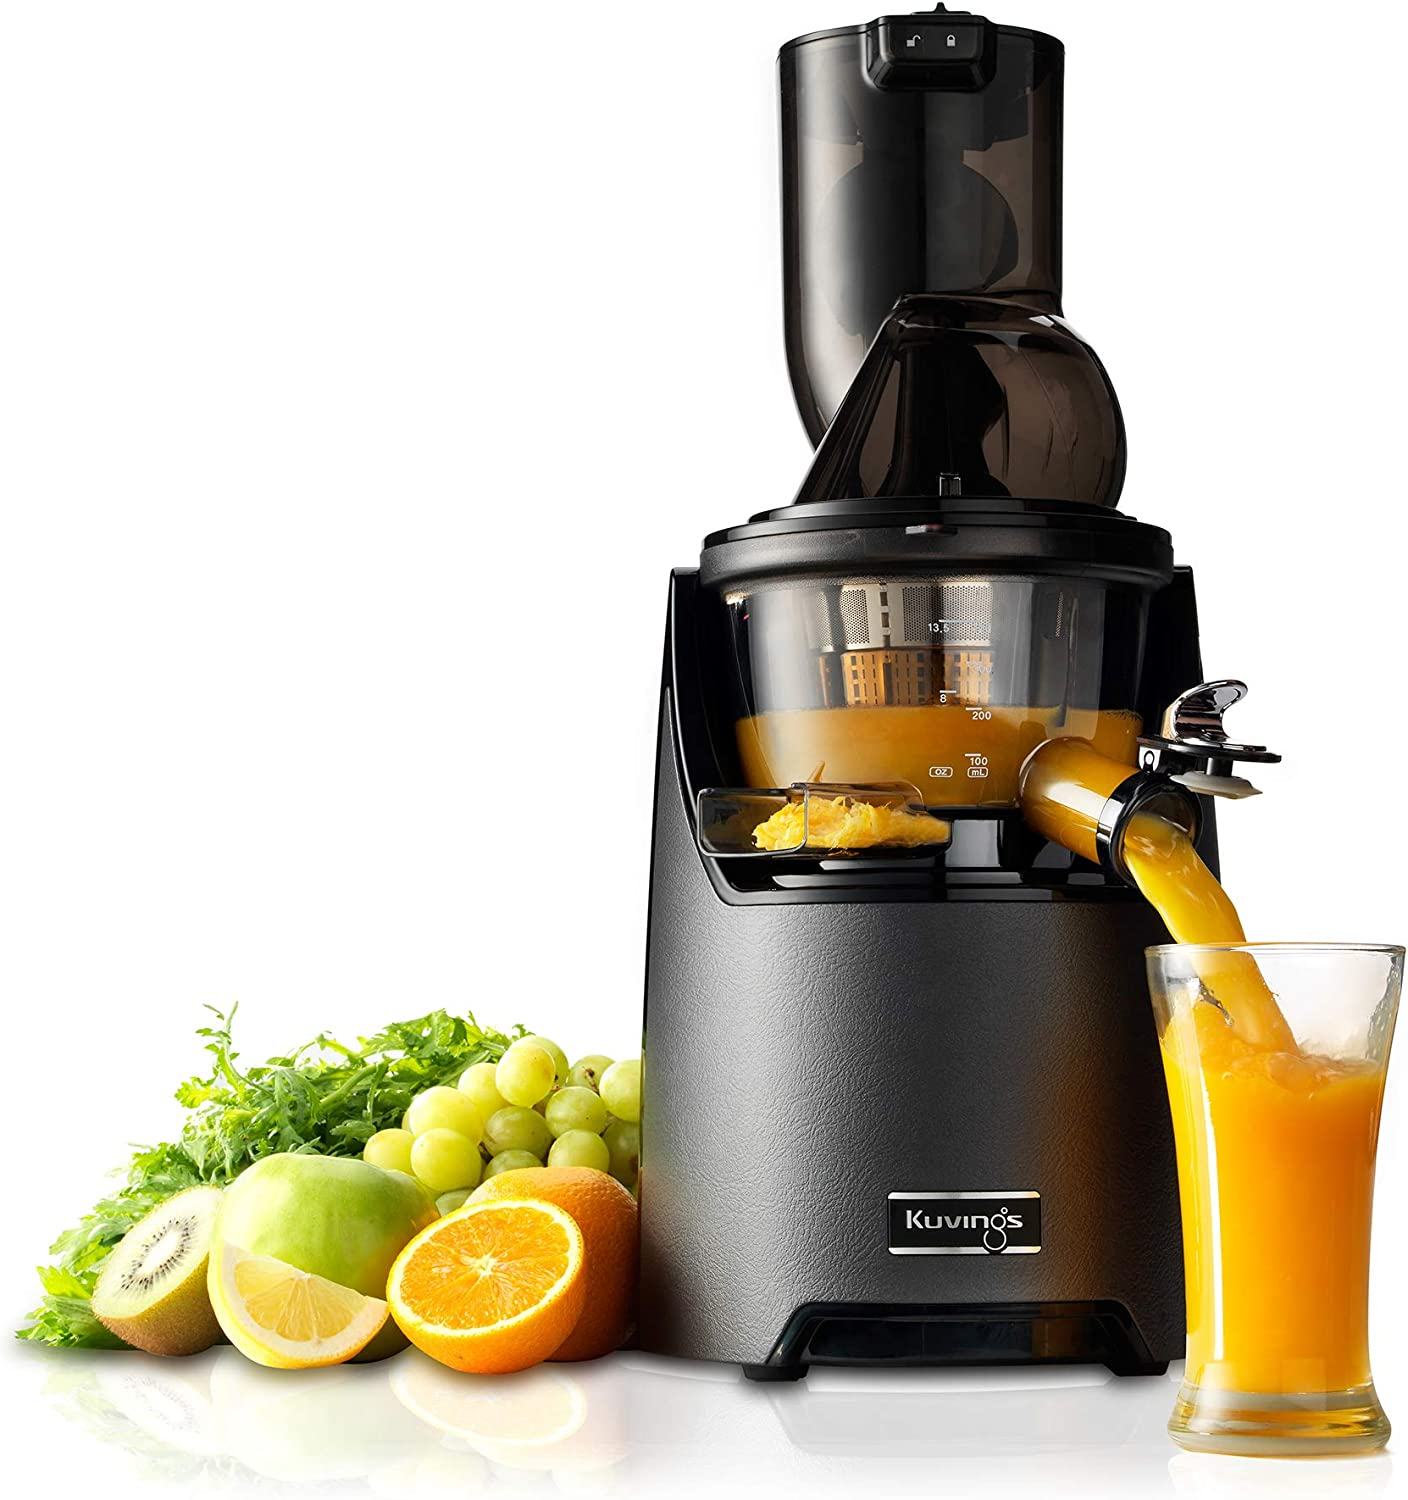 Kuvings Whole Slow Juicer EVO820GM - Higher Nutrients and Vitamins